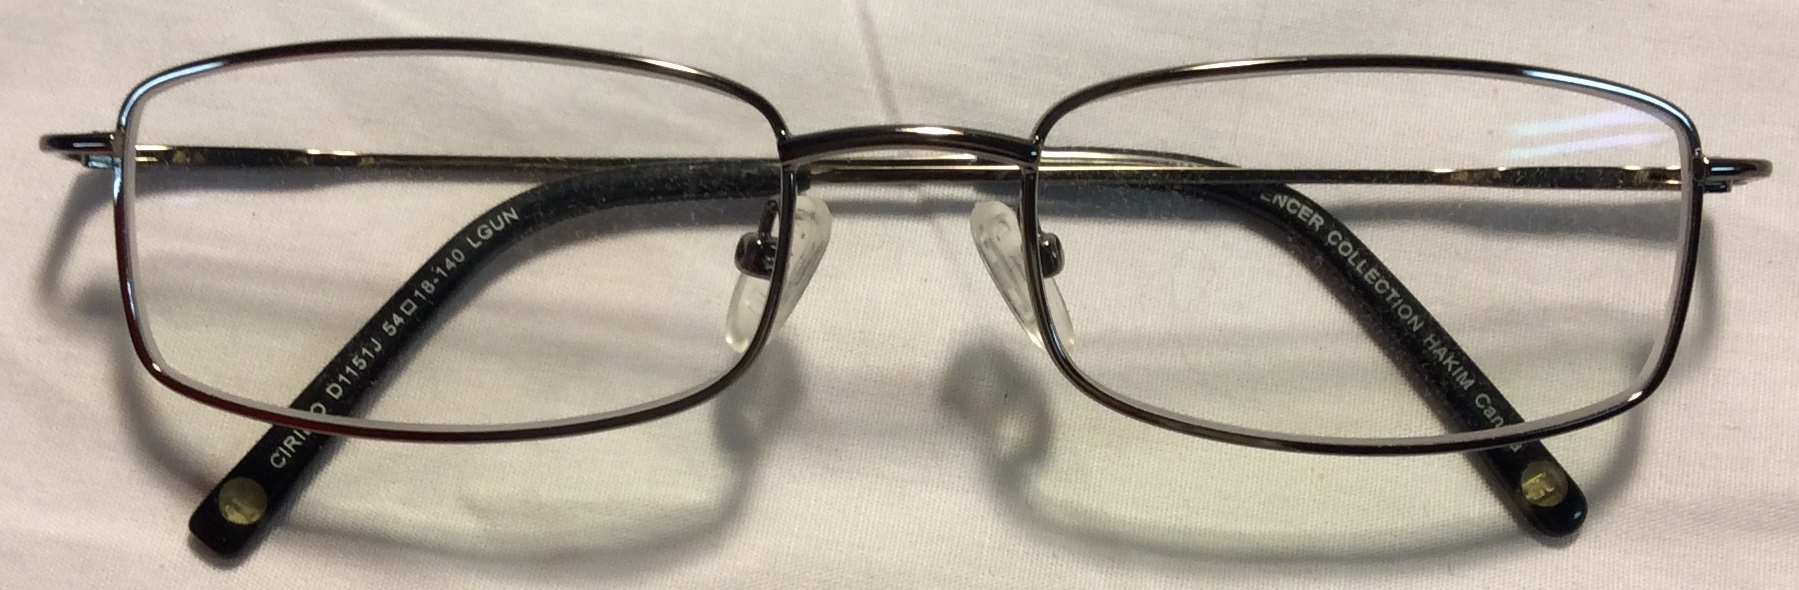 Hakim Thin silver metal frames, grey